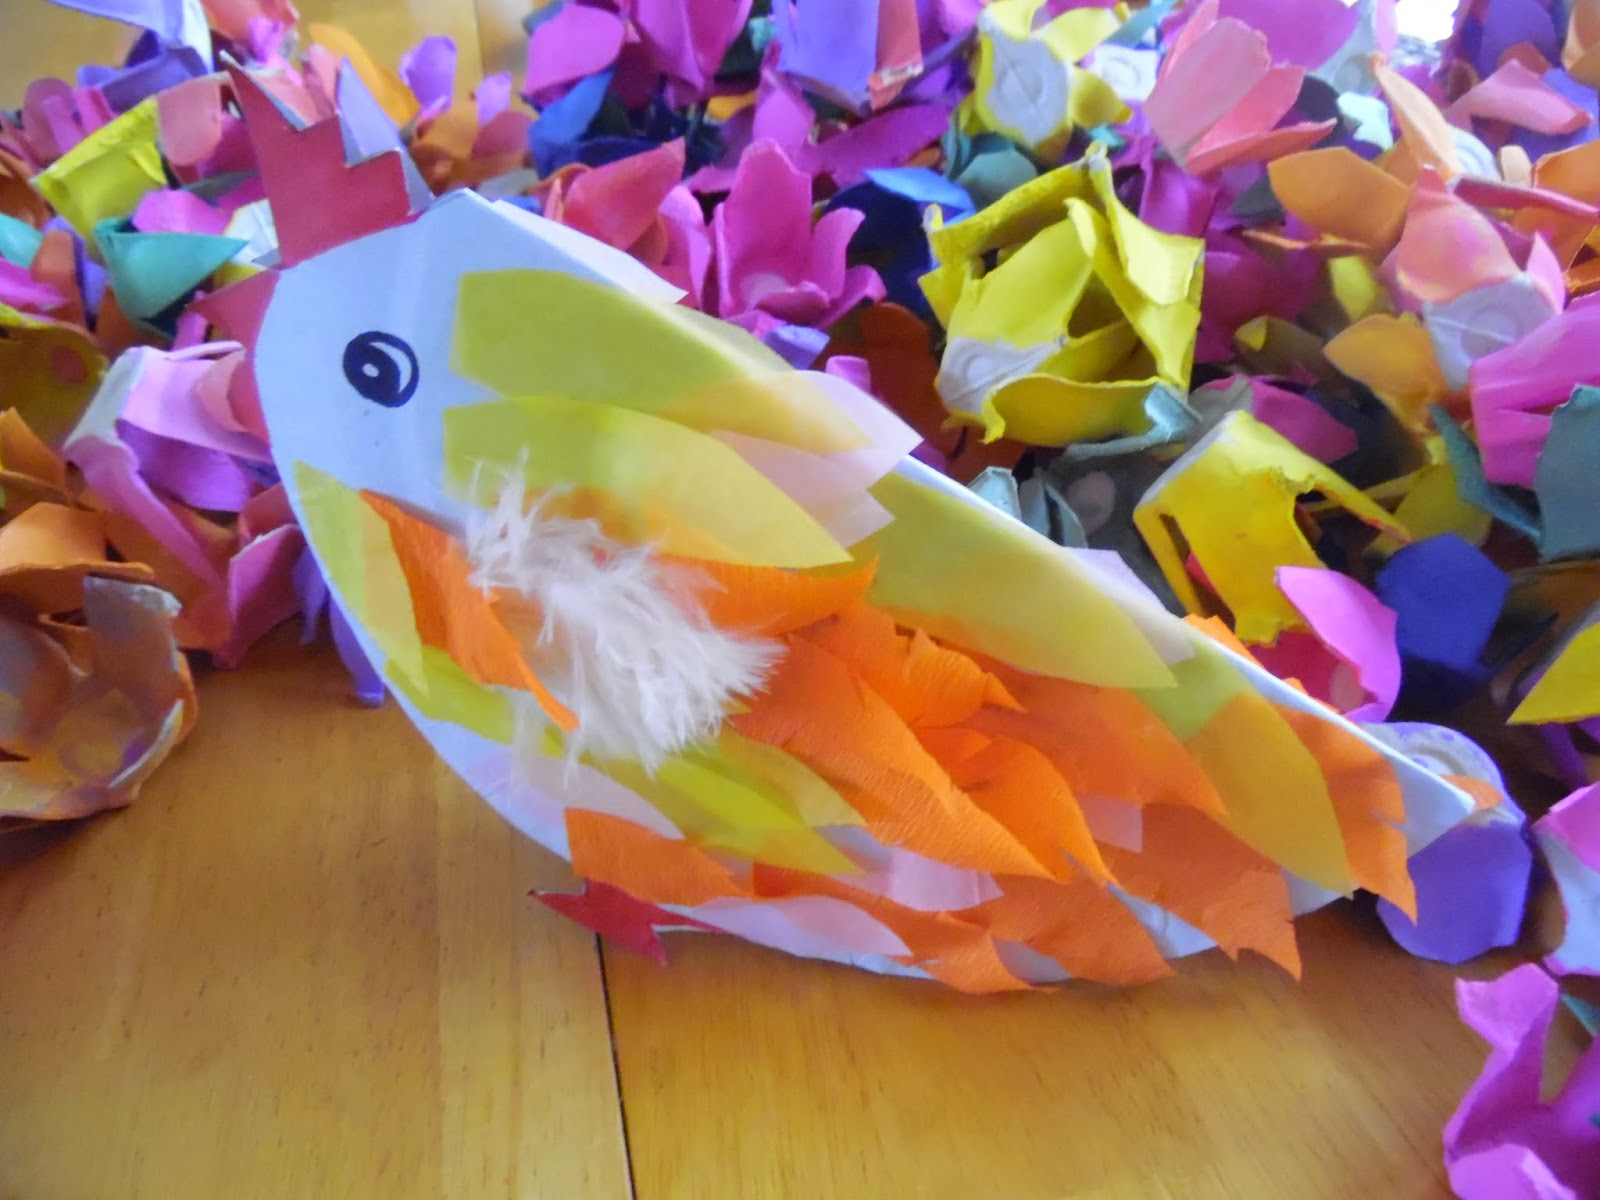 The Chicken Is A Paper Plate That Has Been Flded In Half And Trimmed To Make The Feet Beak And Comb. The Feathers Are A Mixture Of Feathers . & Paper Plate Chicken Craft \u0026 Paper Plate - Chicken. By Crisnanegab ...